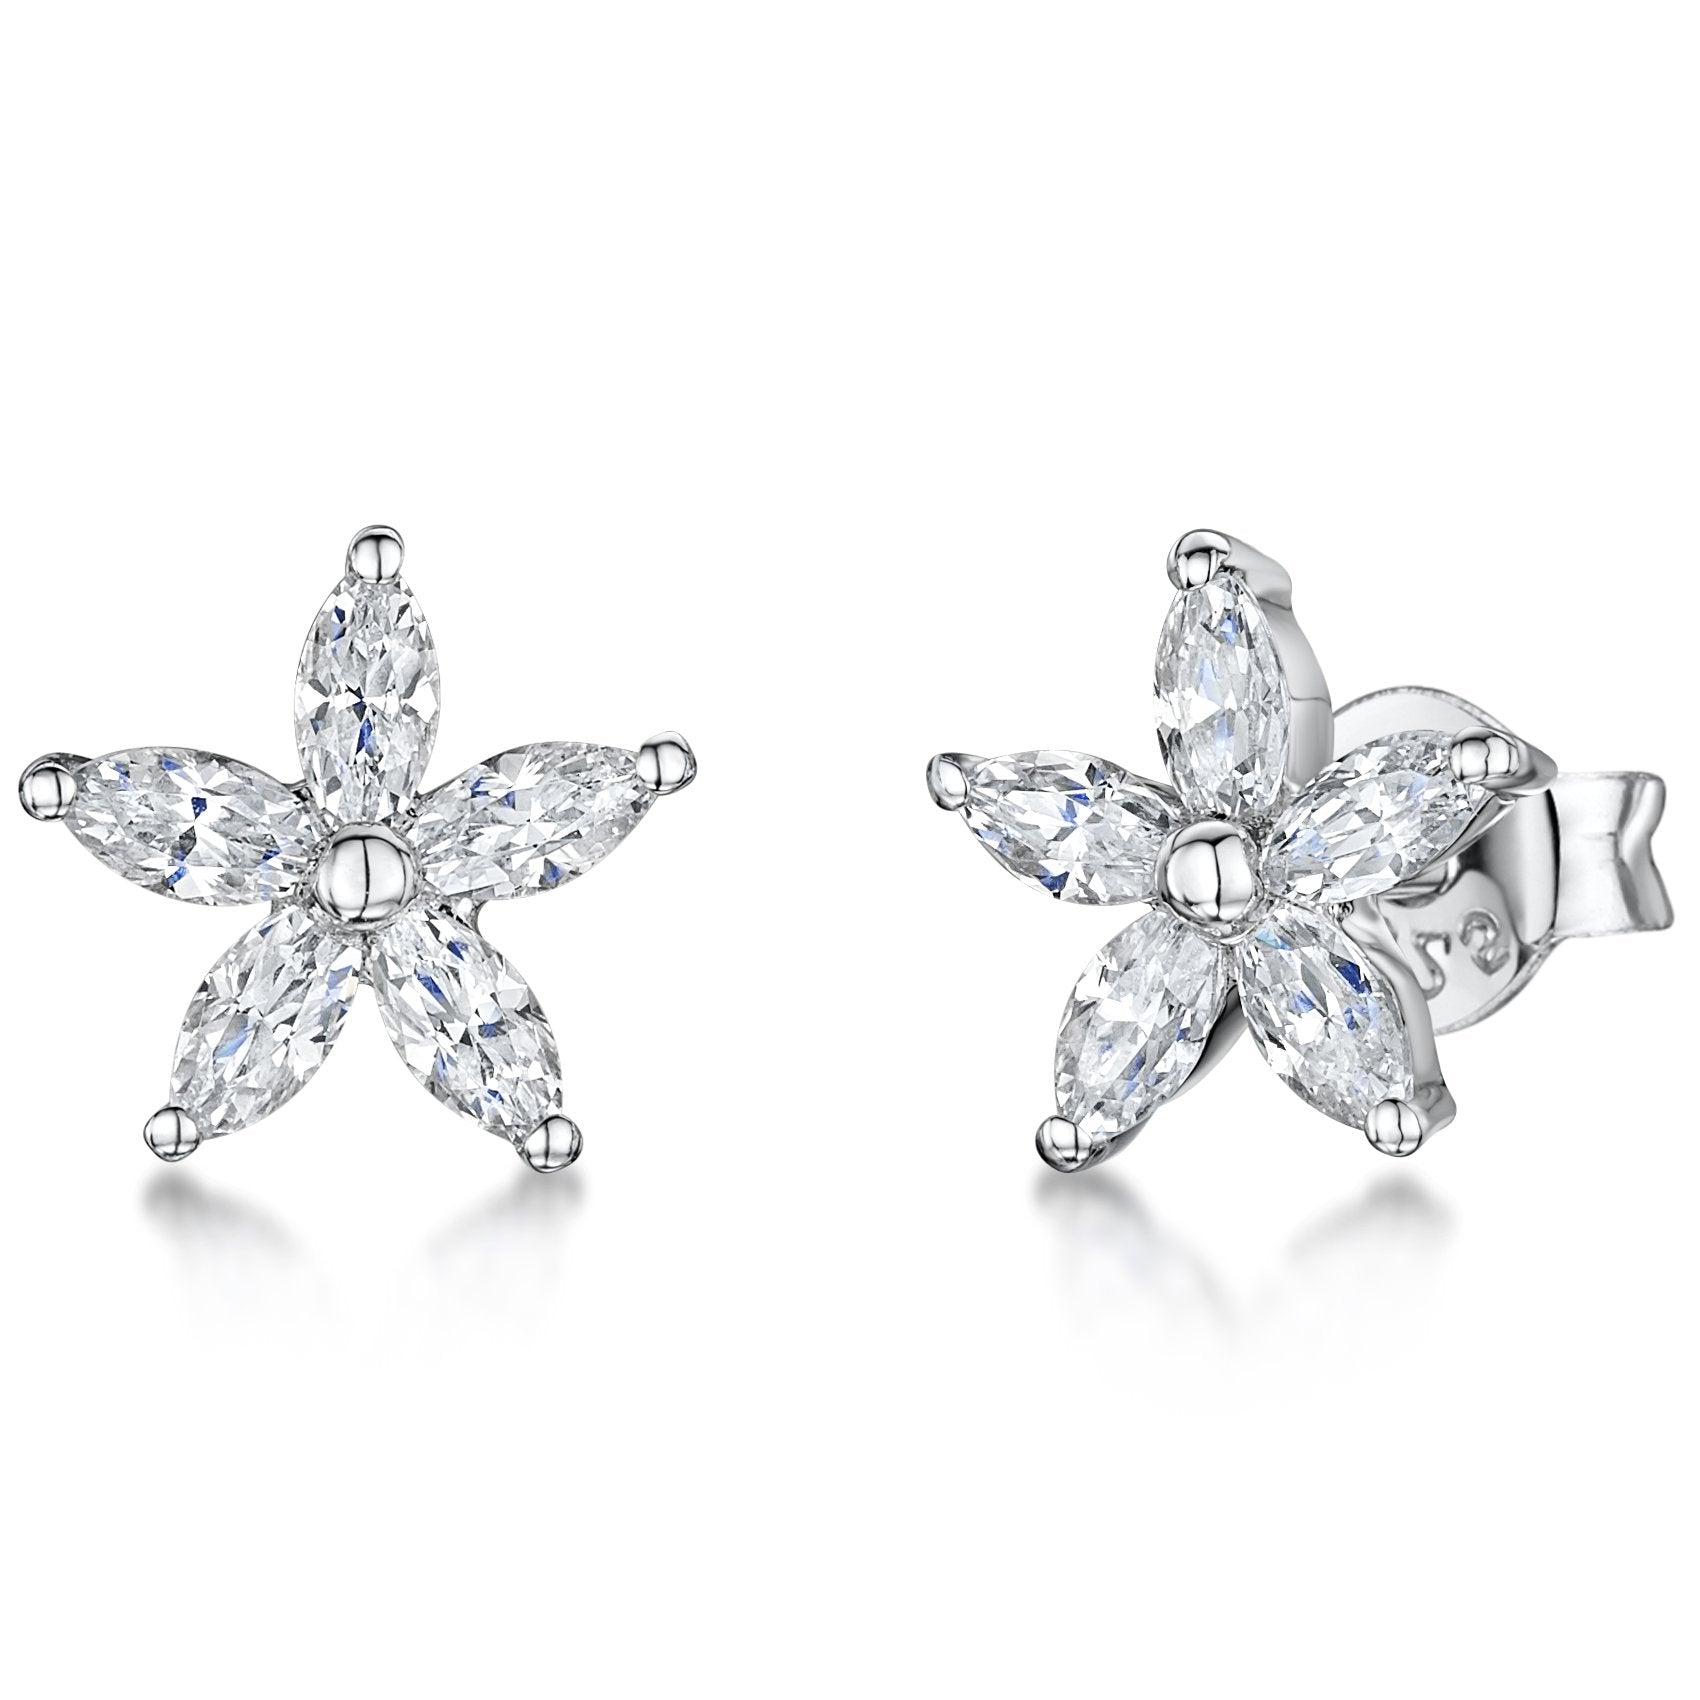 Sterling Silver And White Zirconia Five Stone  Flower Stud Earrings With A  Zirconia CentreEarrings - JOOLS By Jenny Brown